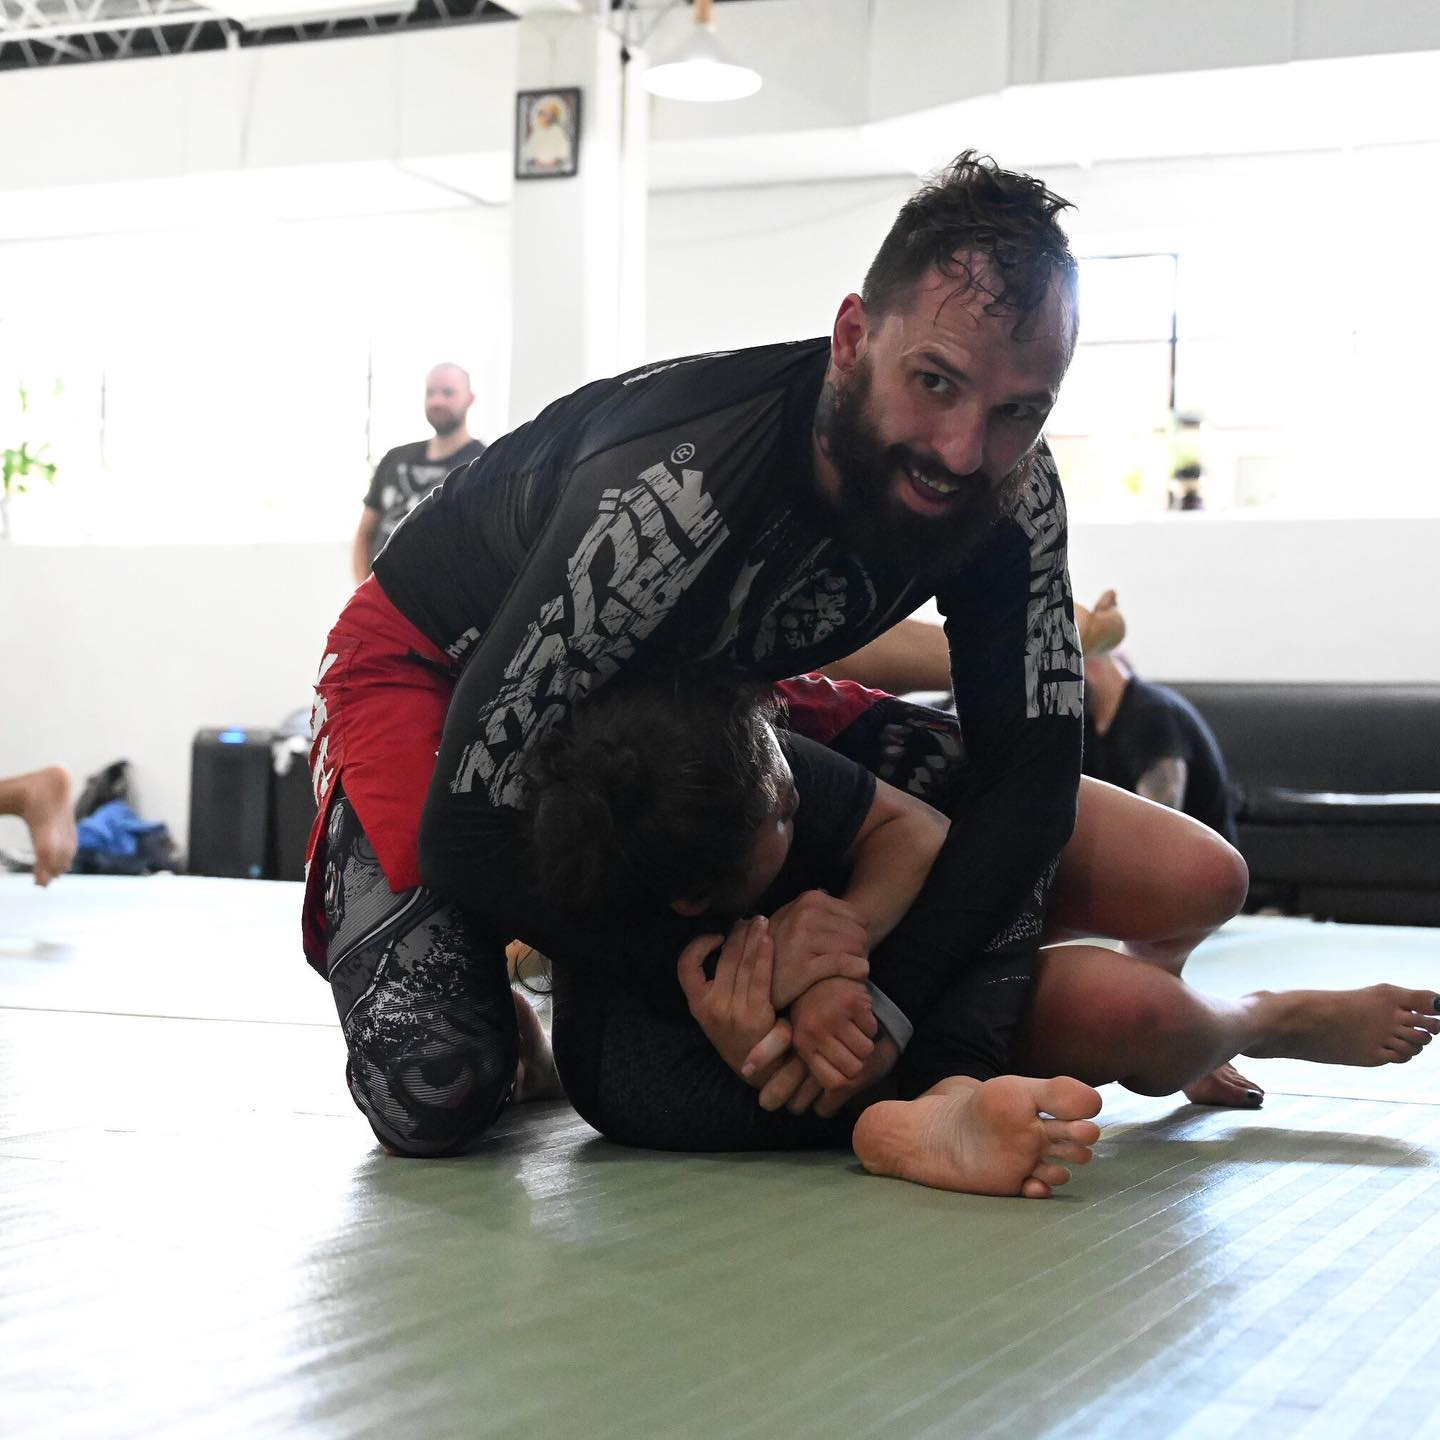 matt 20 years vegan bjj athlete